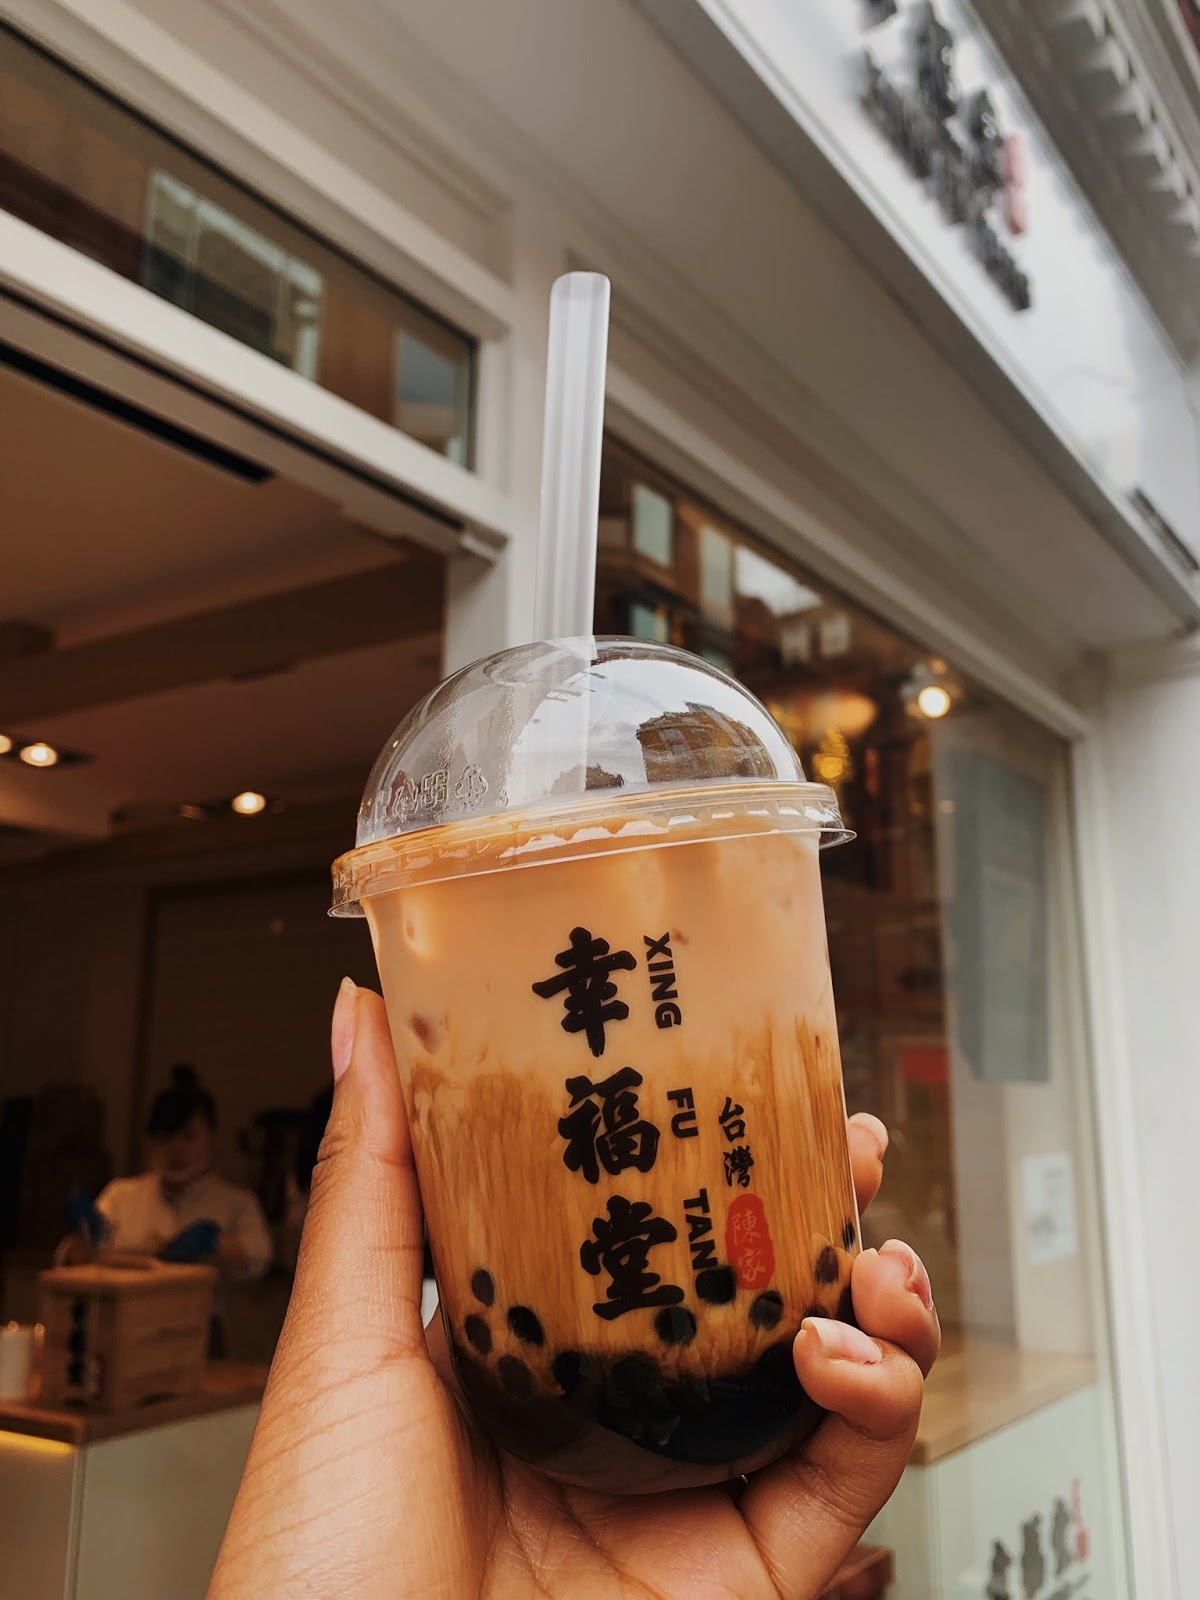 Bubble tea from Xing Fu Tang in London Chinatown